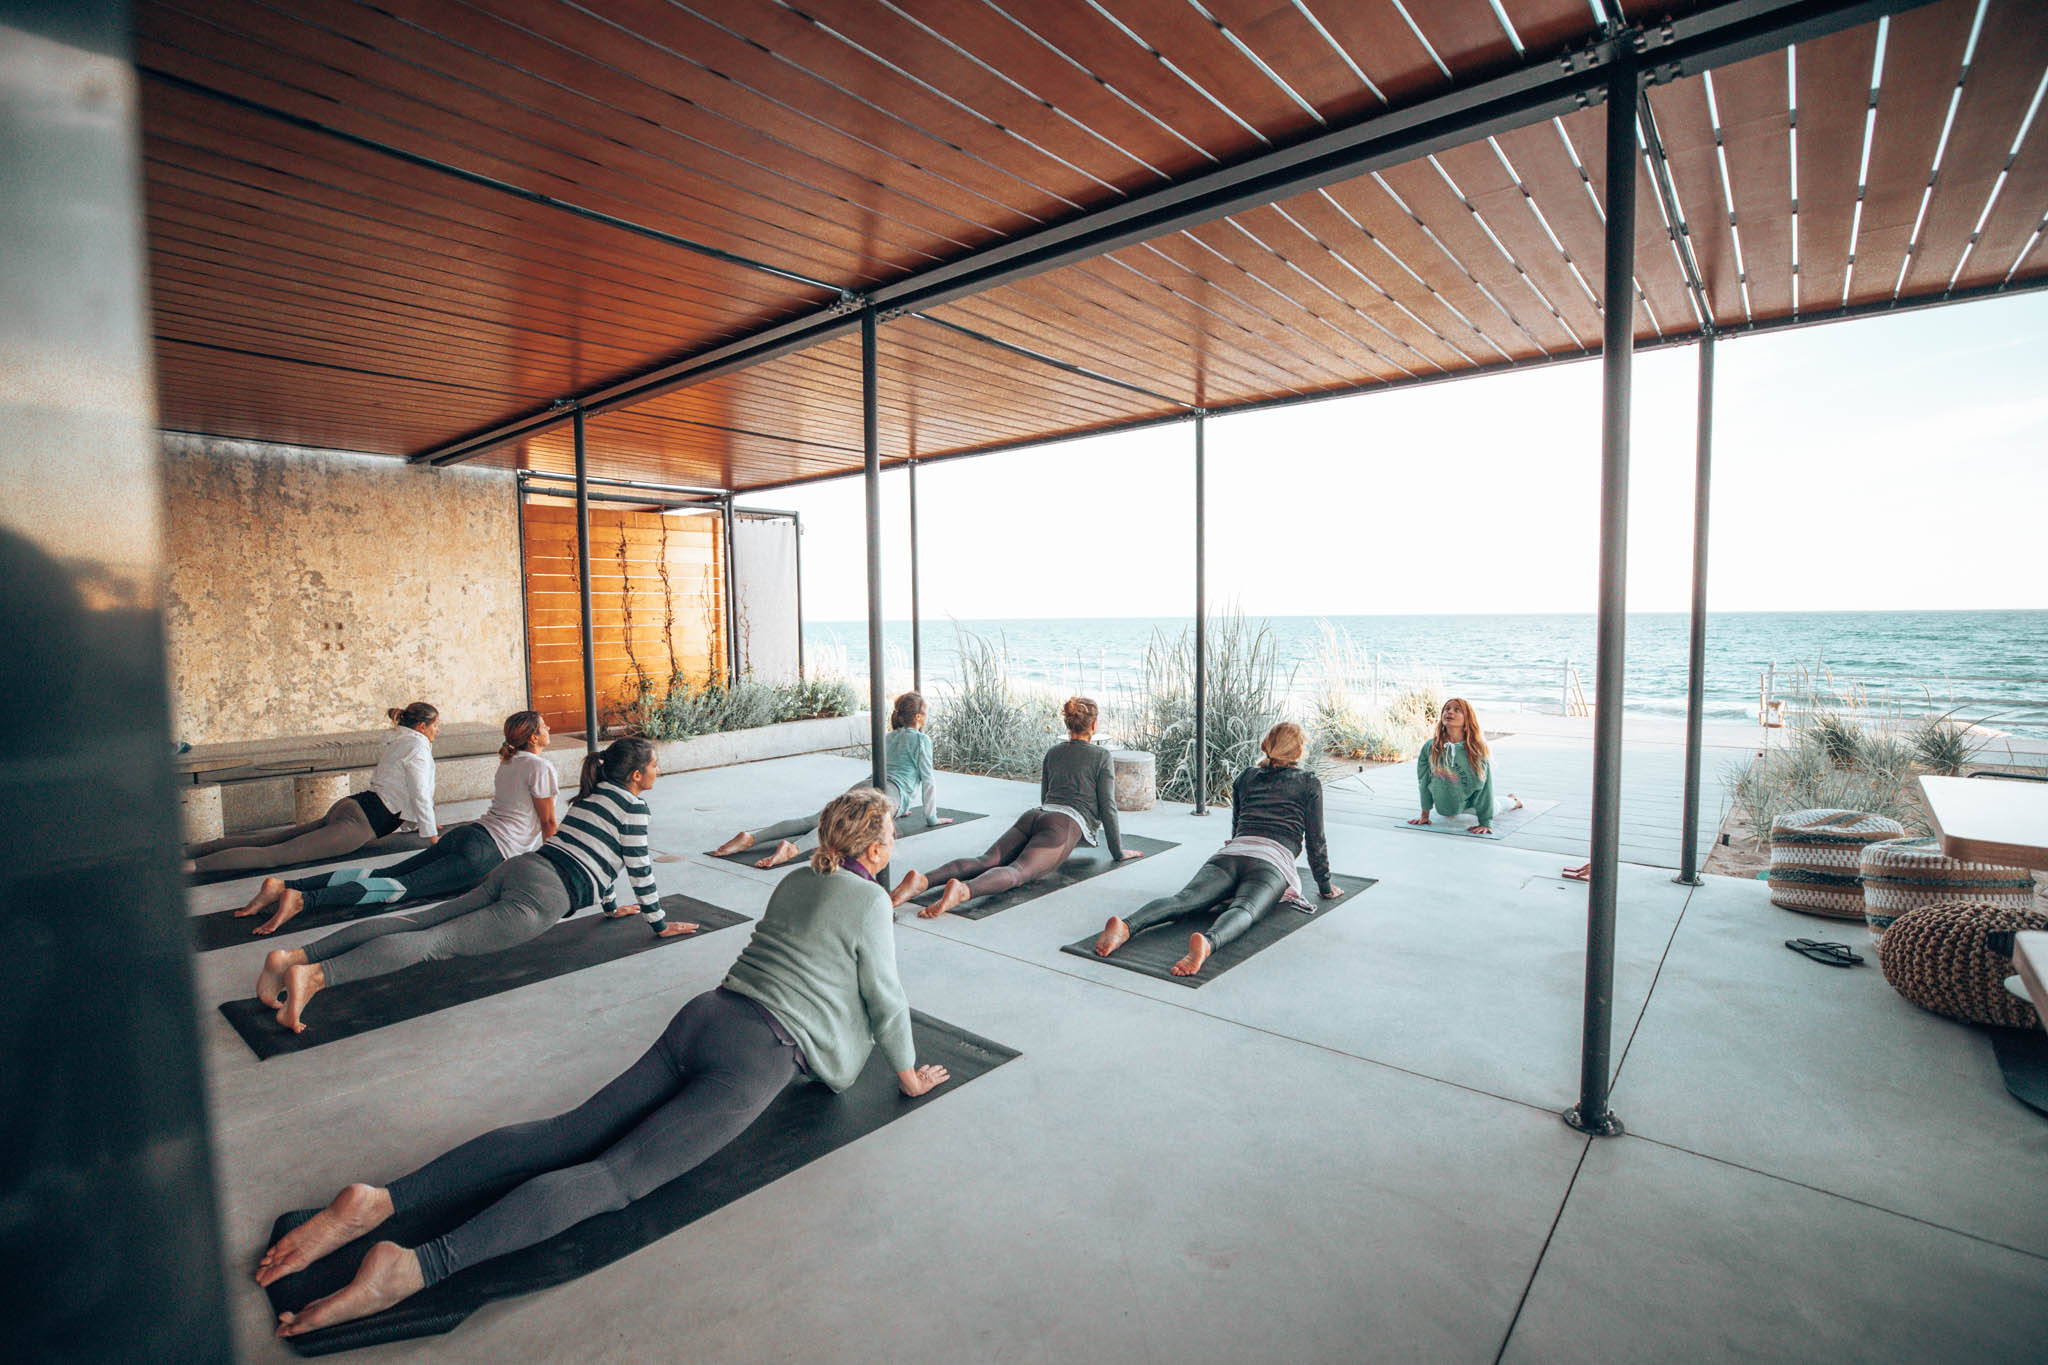 Premium Wellness Blog: The place where Yoga & Wine successfully meet